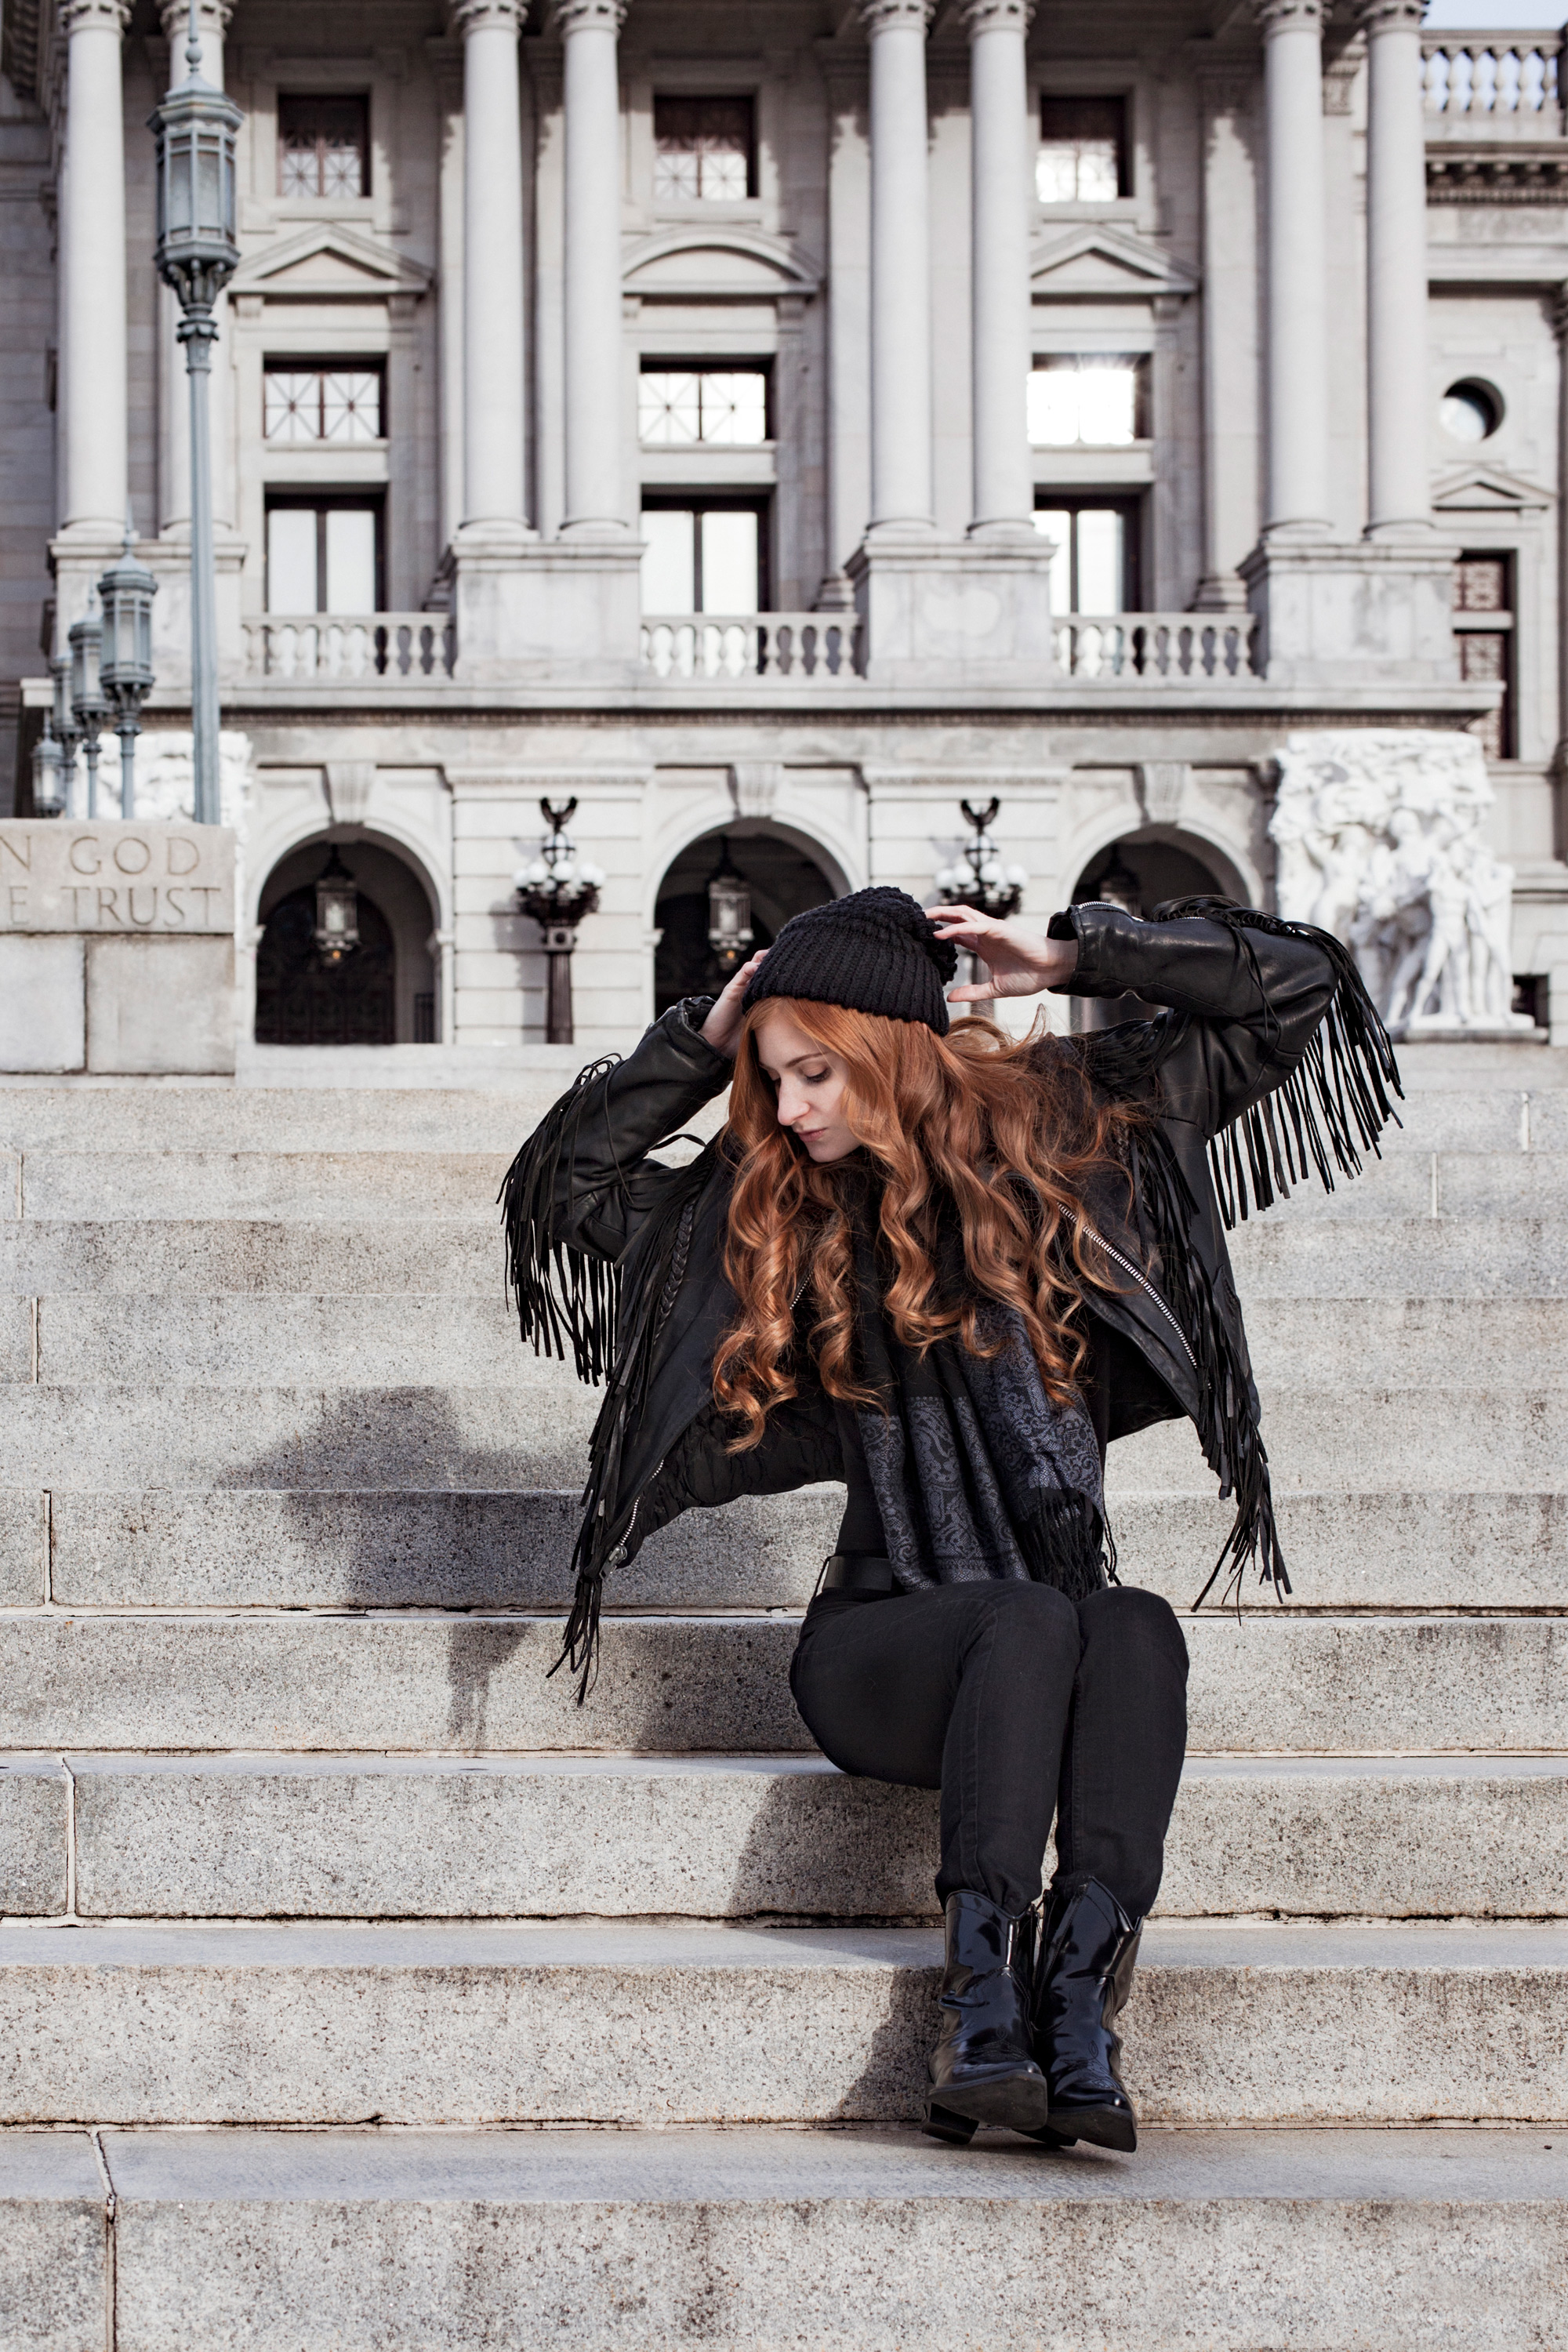 Redhead in leather jacket looking down on steps